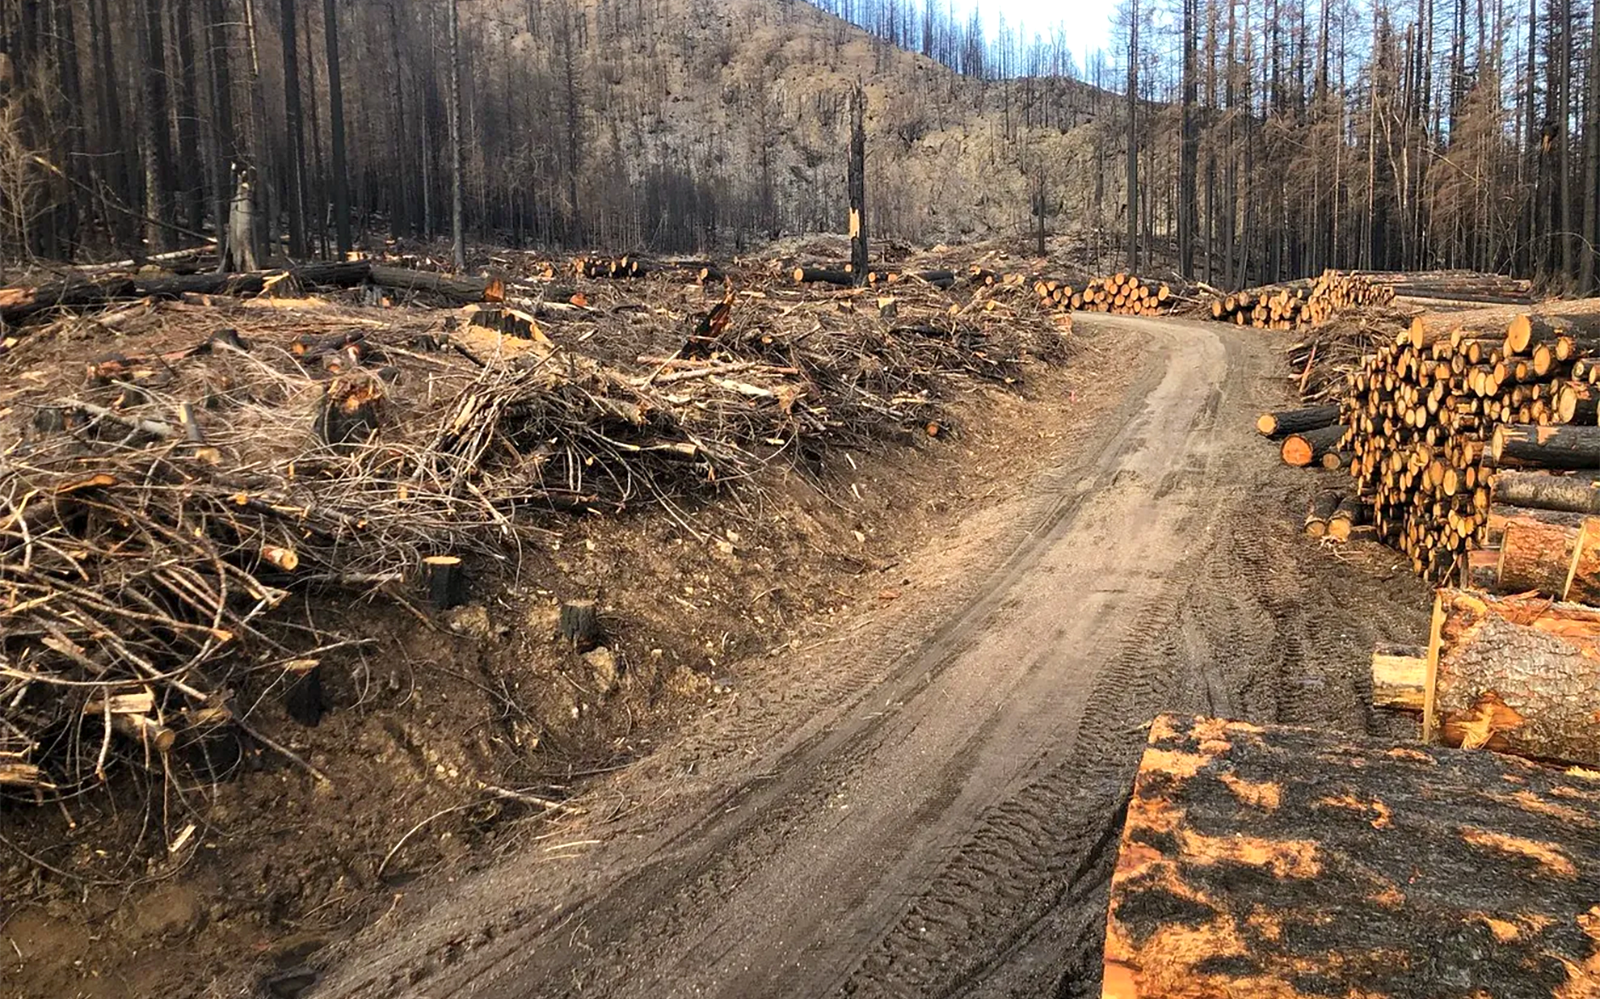 A Call on Secretaries Haaland and Vilsack to Rein in Reckless Post-Fire Roadside Logging in Oregon